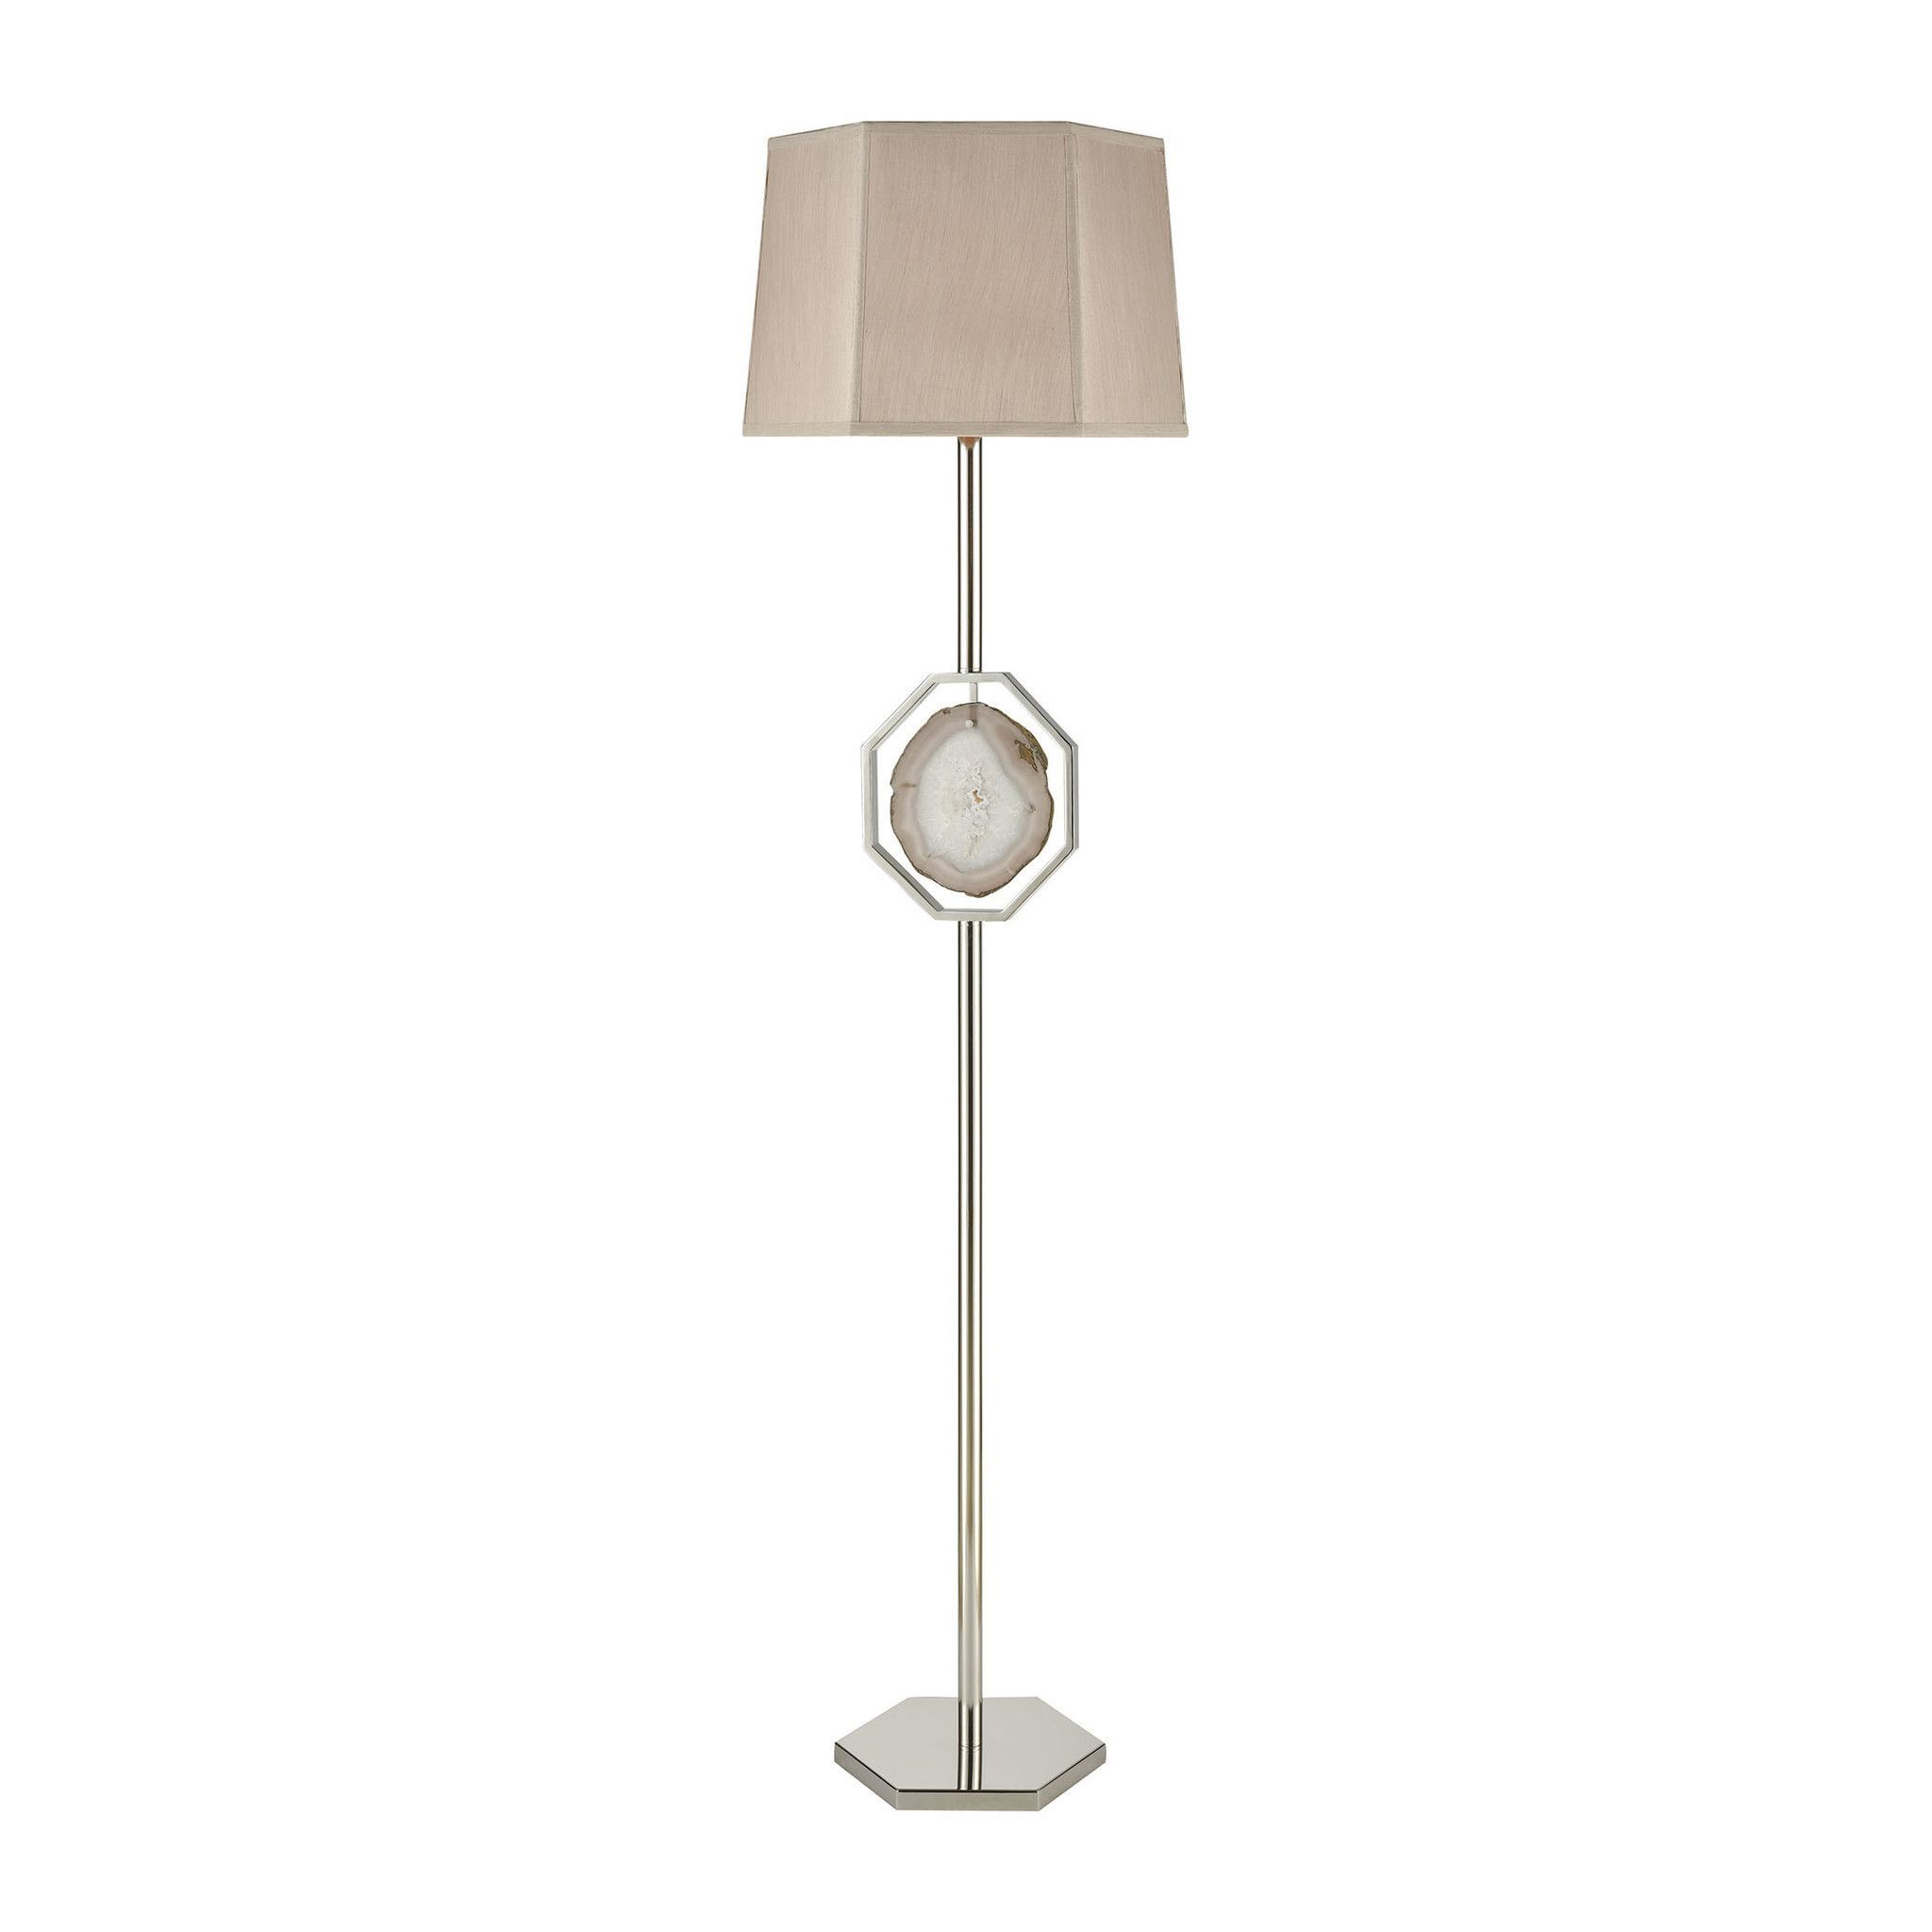 0 008261 Gt Askja 1 Light Floor Lamp Polished Nickel Natural Agate Floor Lamp Cool Floor Lamps